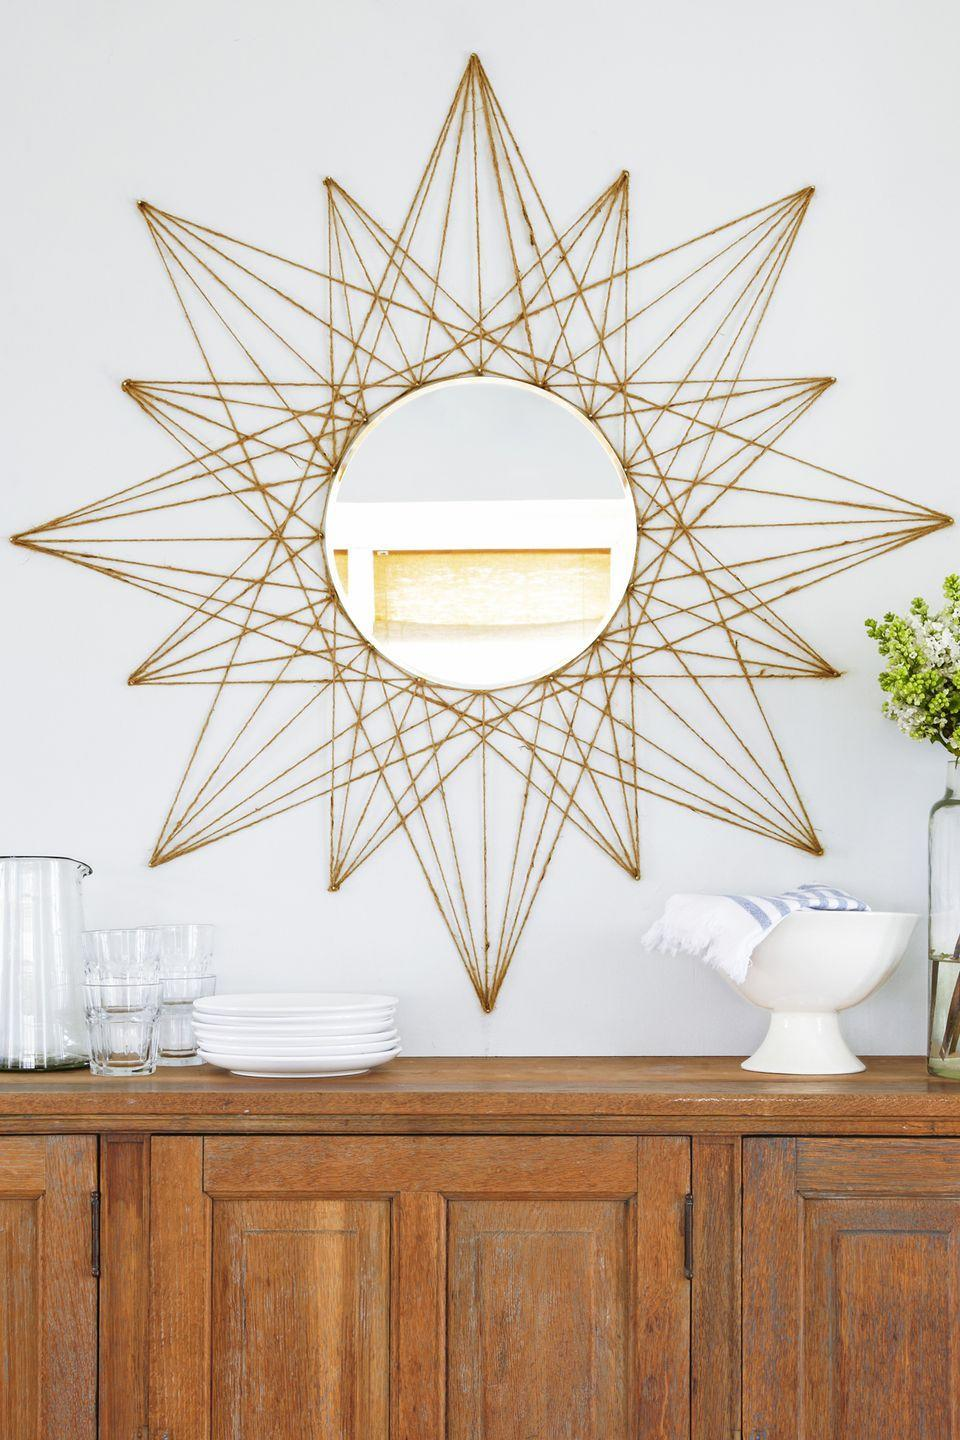 "<p>This stunning star mirror looks intricate, but it's surprisingly easy to DIY if you follow the step-by-step guide. An added bonus: It costs less than $25 to make. </p><p><em><a href=""https://www.goodhousekeeping.com/home/decorating-ideas/a47625/diy-rope-star-mirror/"" rel=""nofollow noopener"" target=""_blank"" data-ylk=""slk:Get the tutorial »"" class=""link rapid-noclick-resp"">Get the tutorial »</a></em></p>"